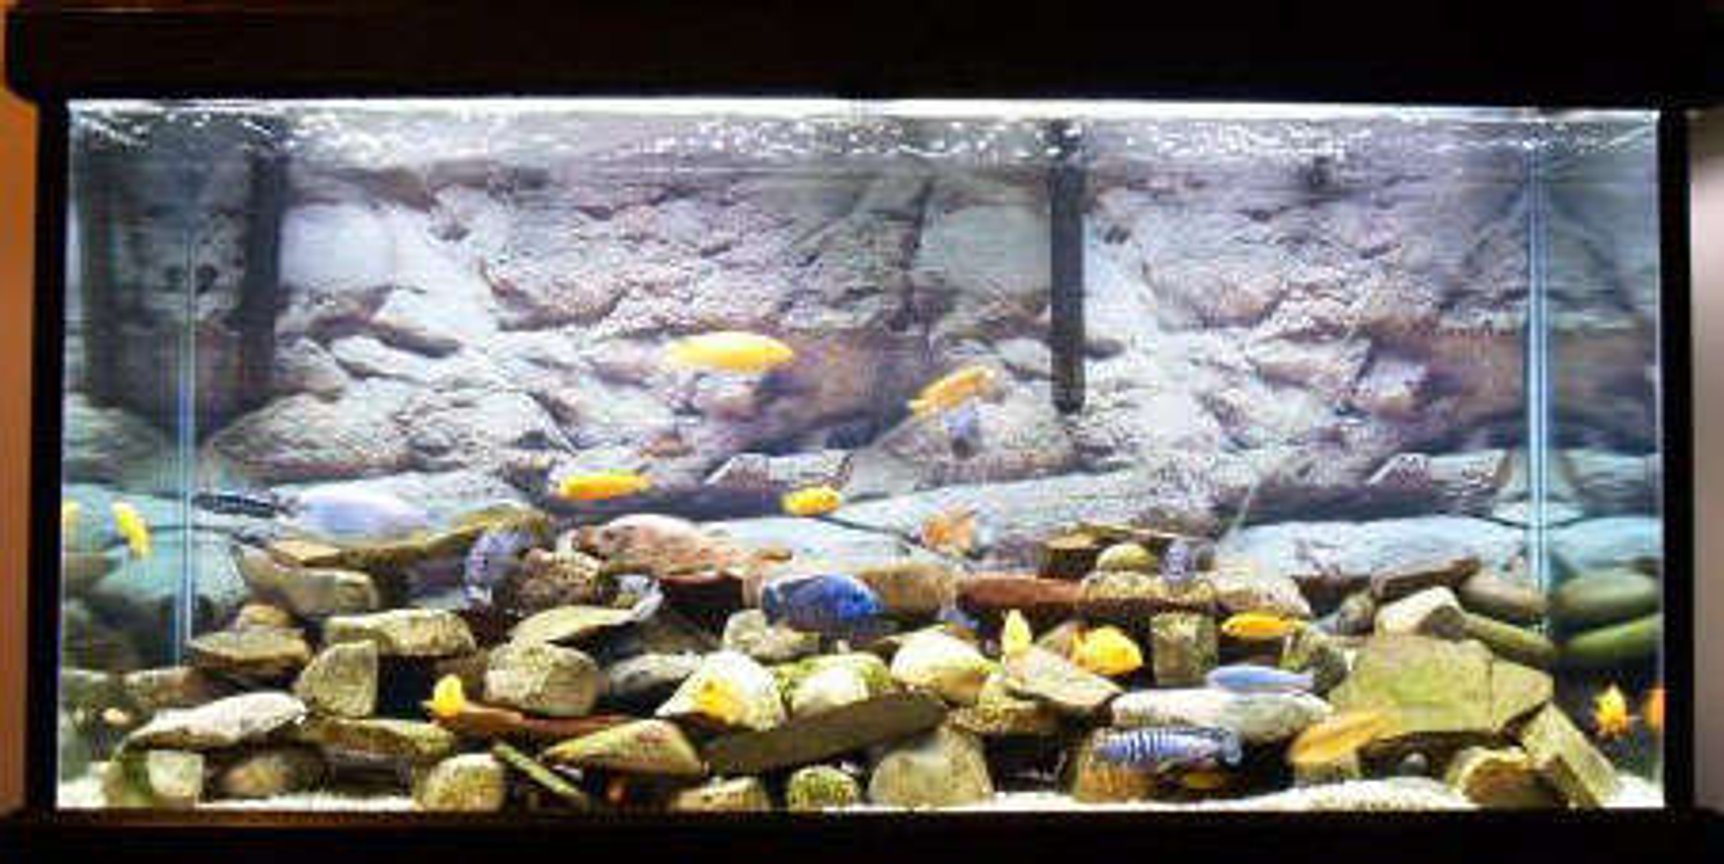 55 gallons freshwater fish tank (mostly fish and non-living decorations) - j